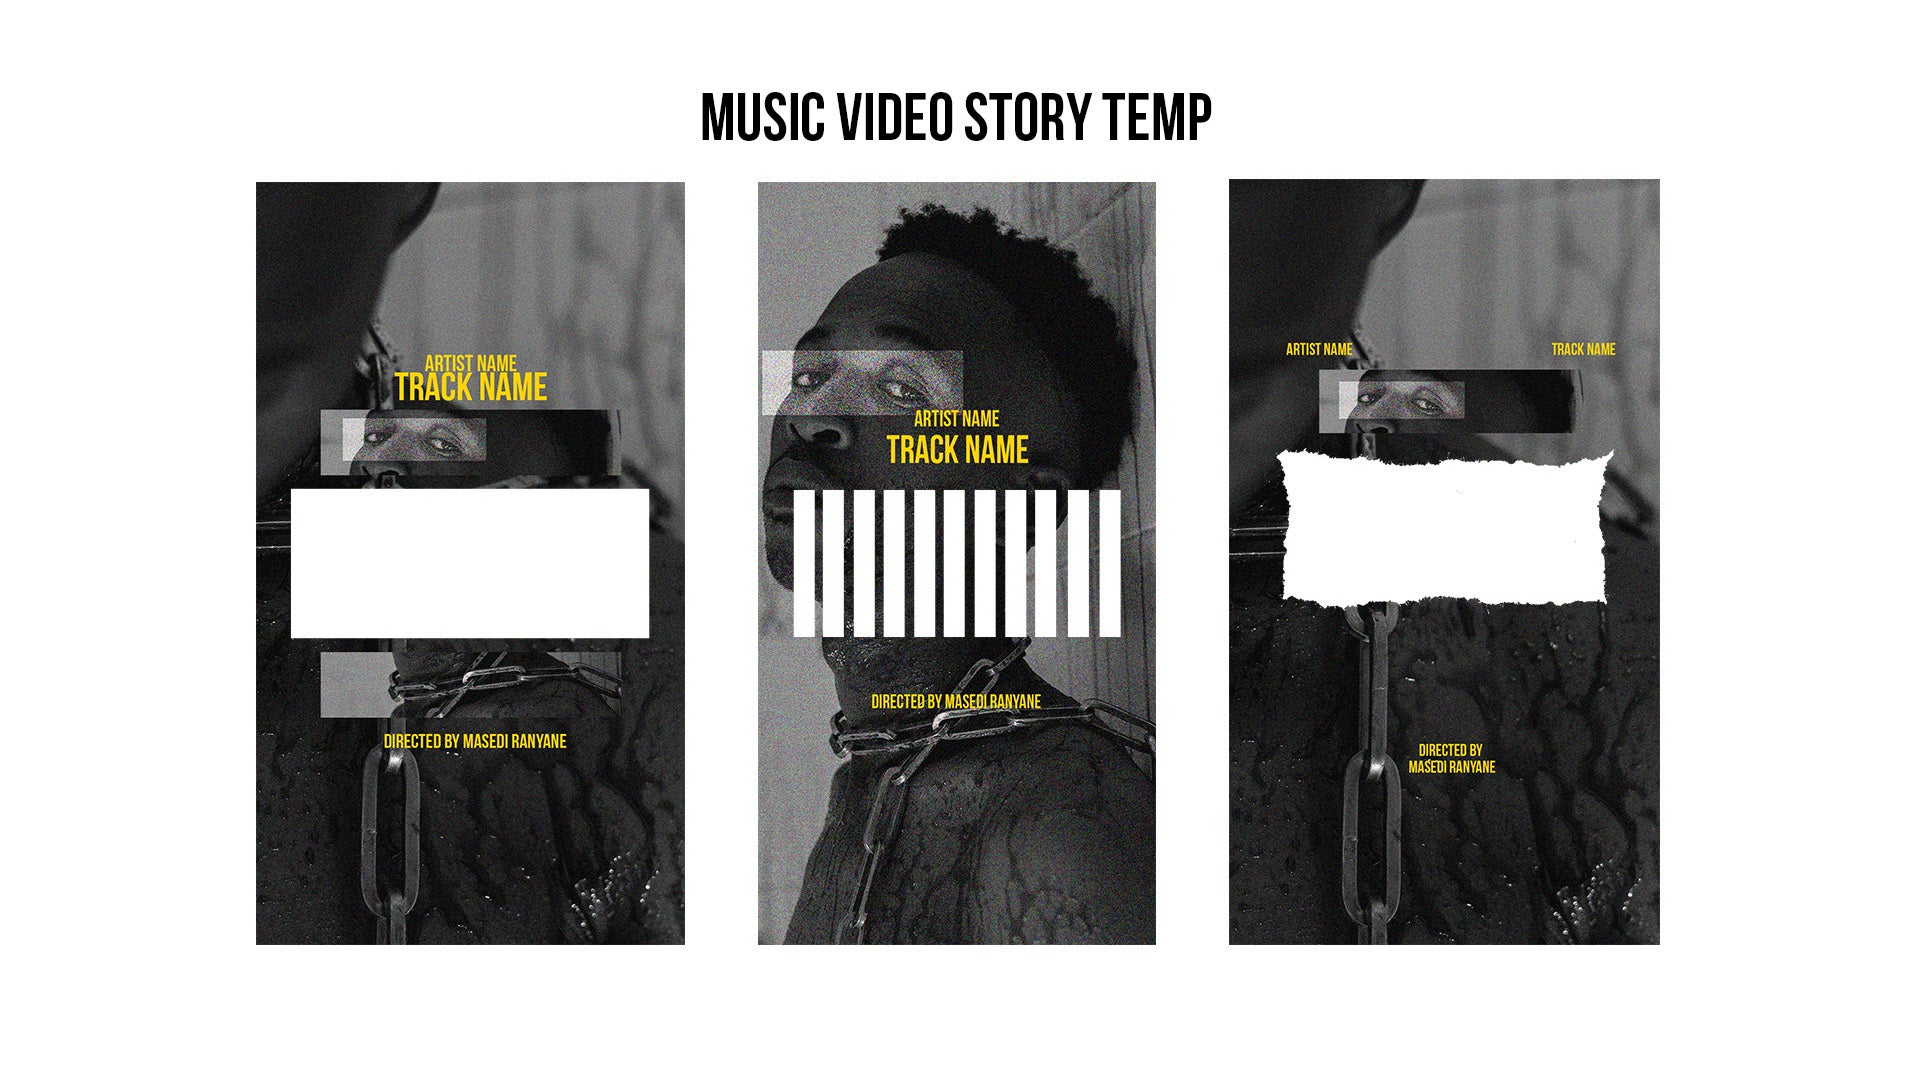 music video story temp